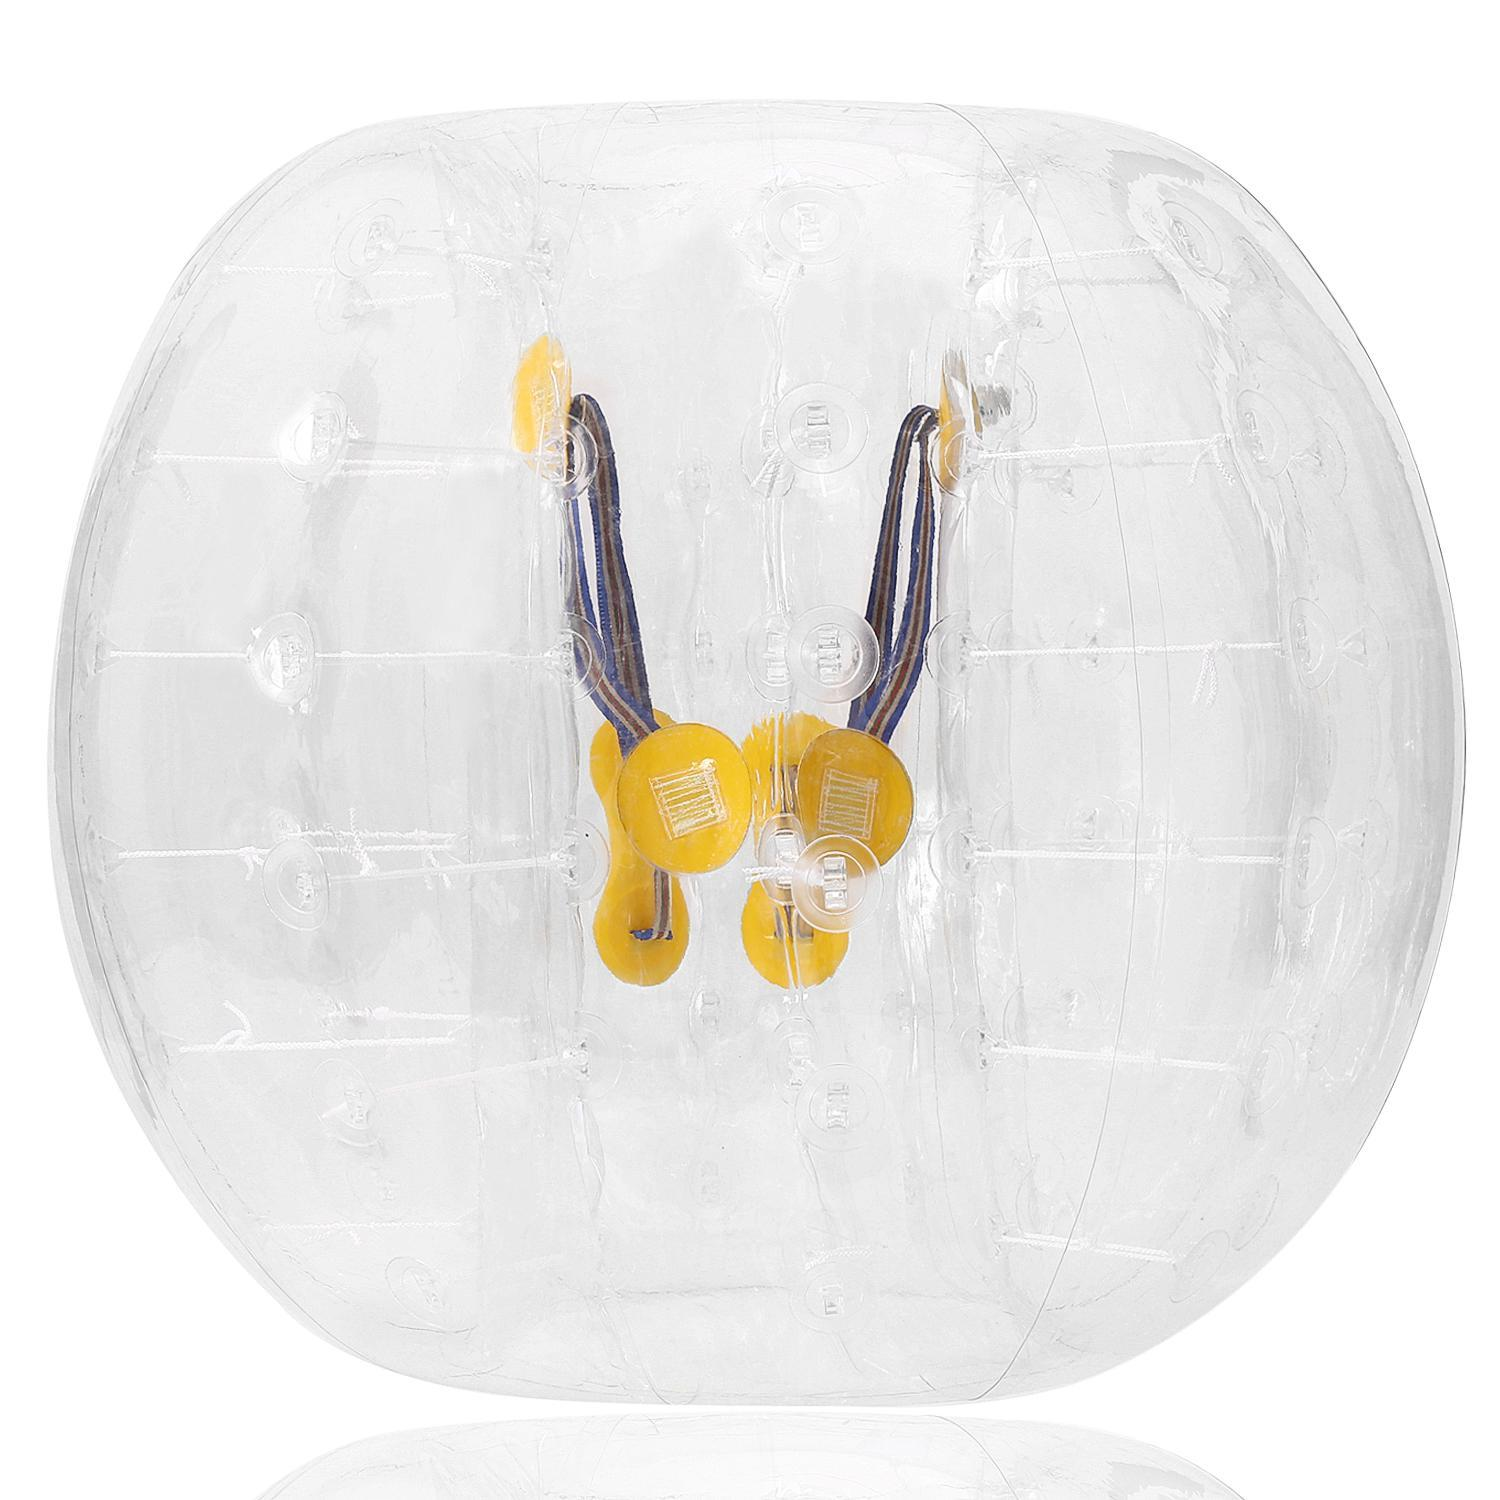 Human Knocker Ball Bubble Soccer Football Adults and KidsInflatable Bumper Ball WLT by